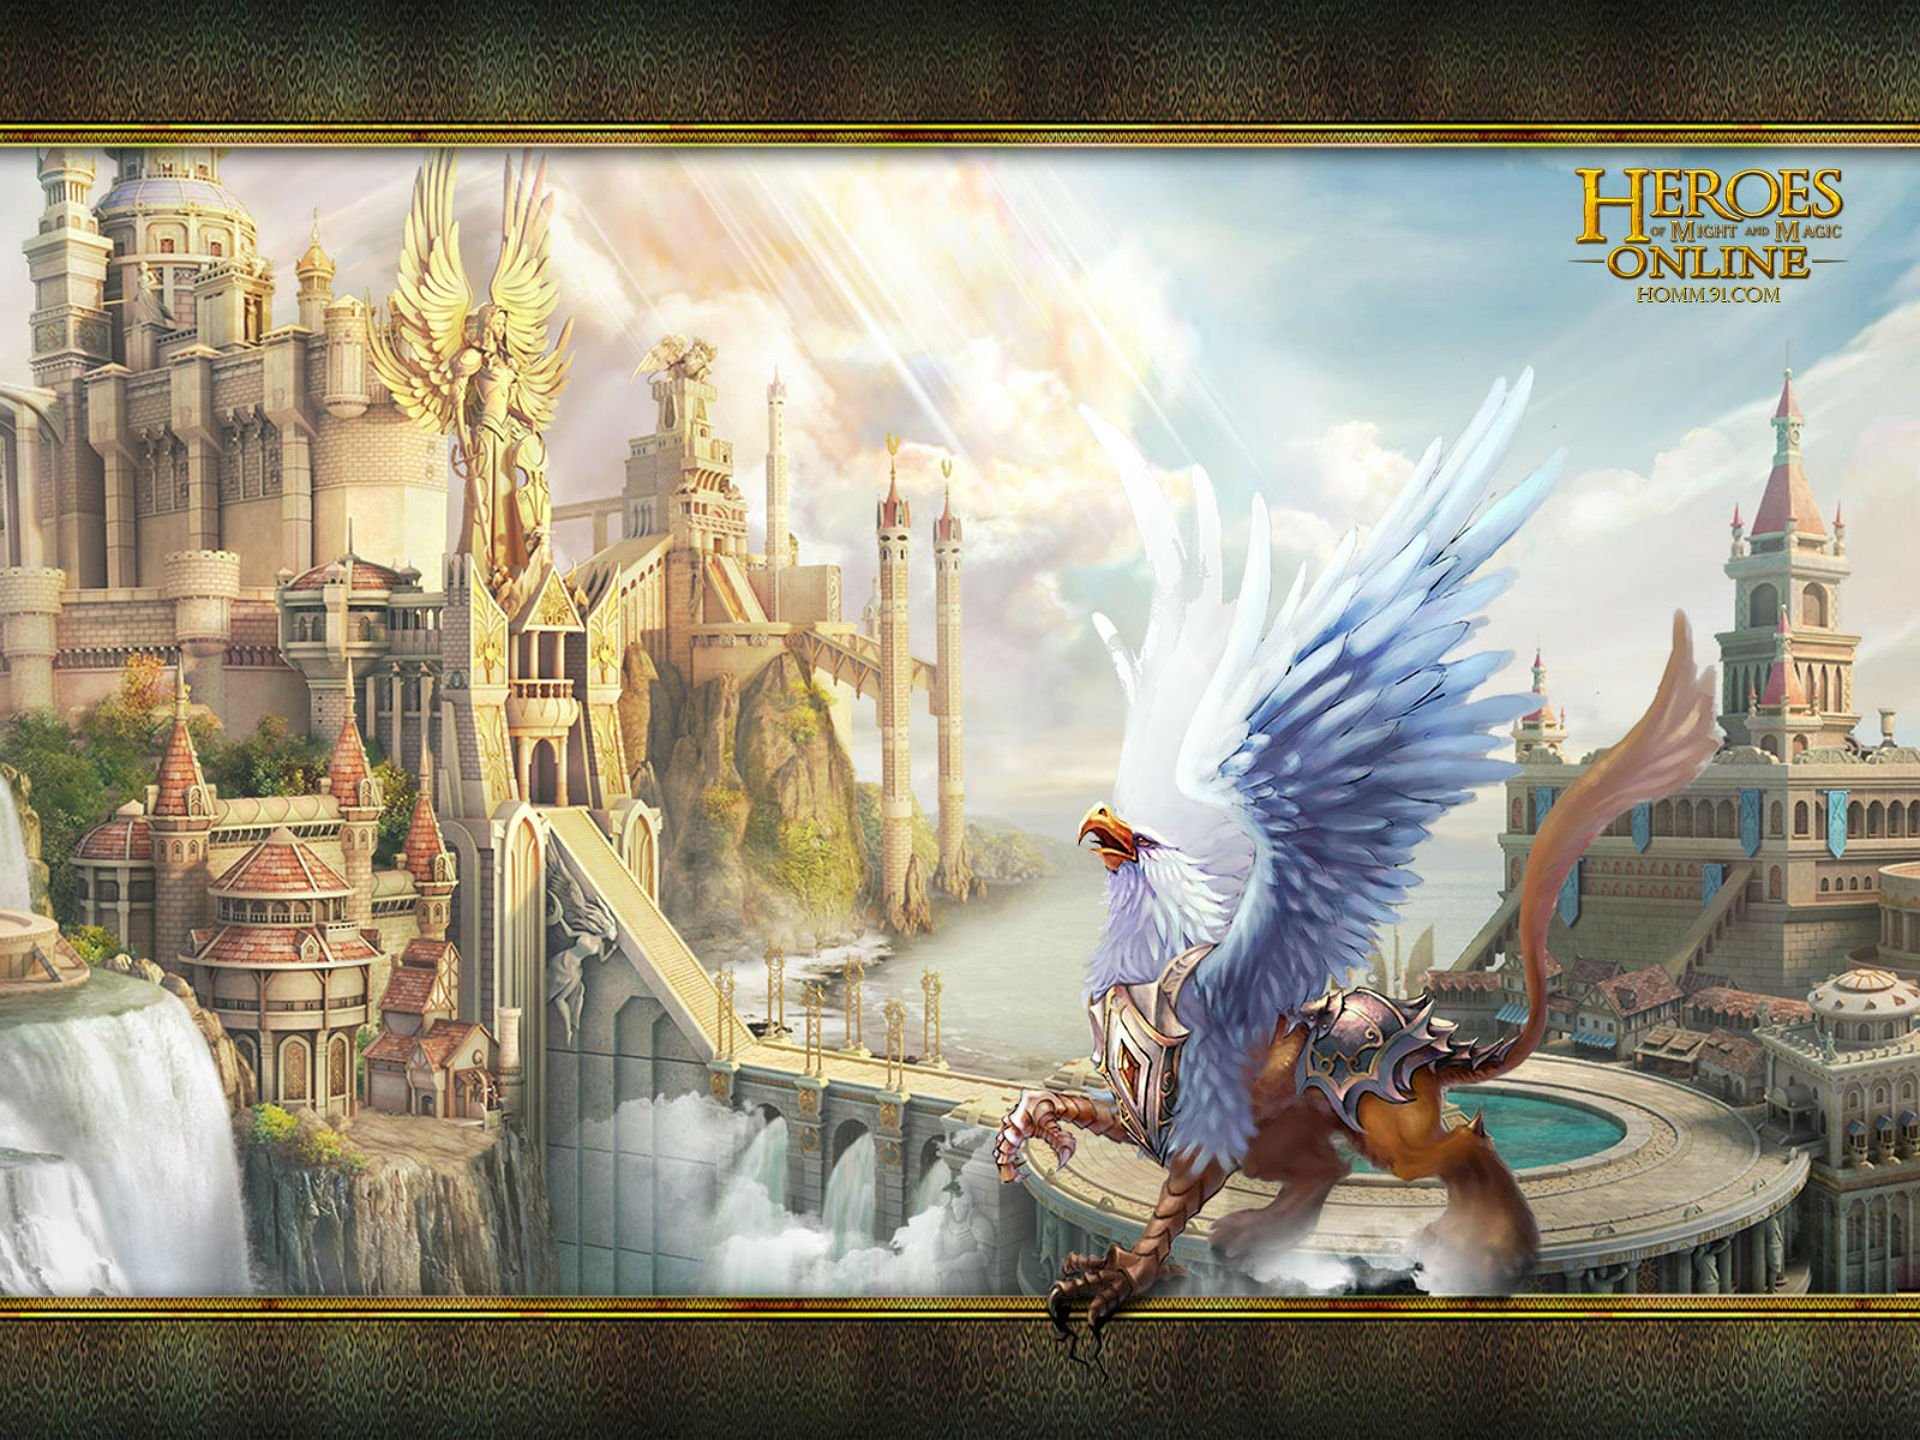 HEROES MIGHT MAGIC Strategy Fantasy Fighting Adventure Action Online 1hmm Eagle Castle City Cities Wallpaper